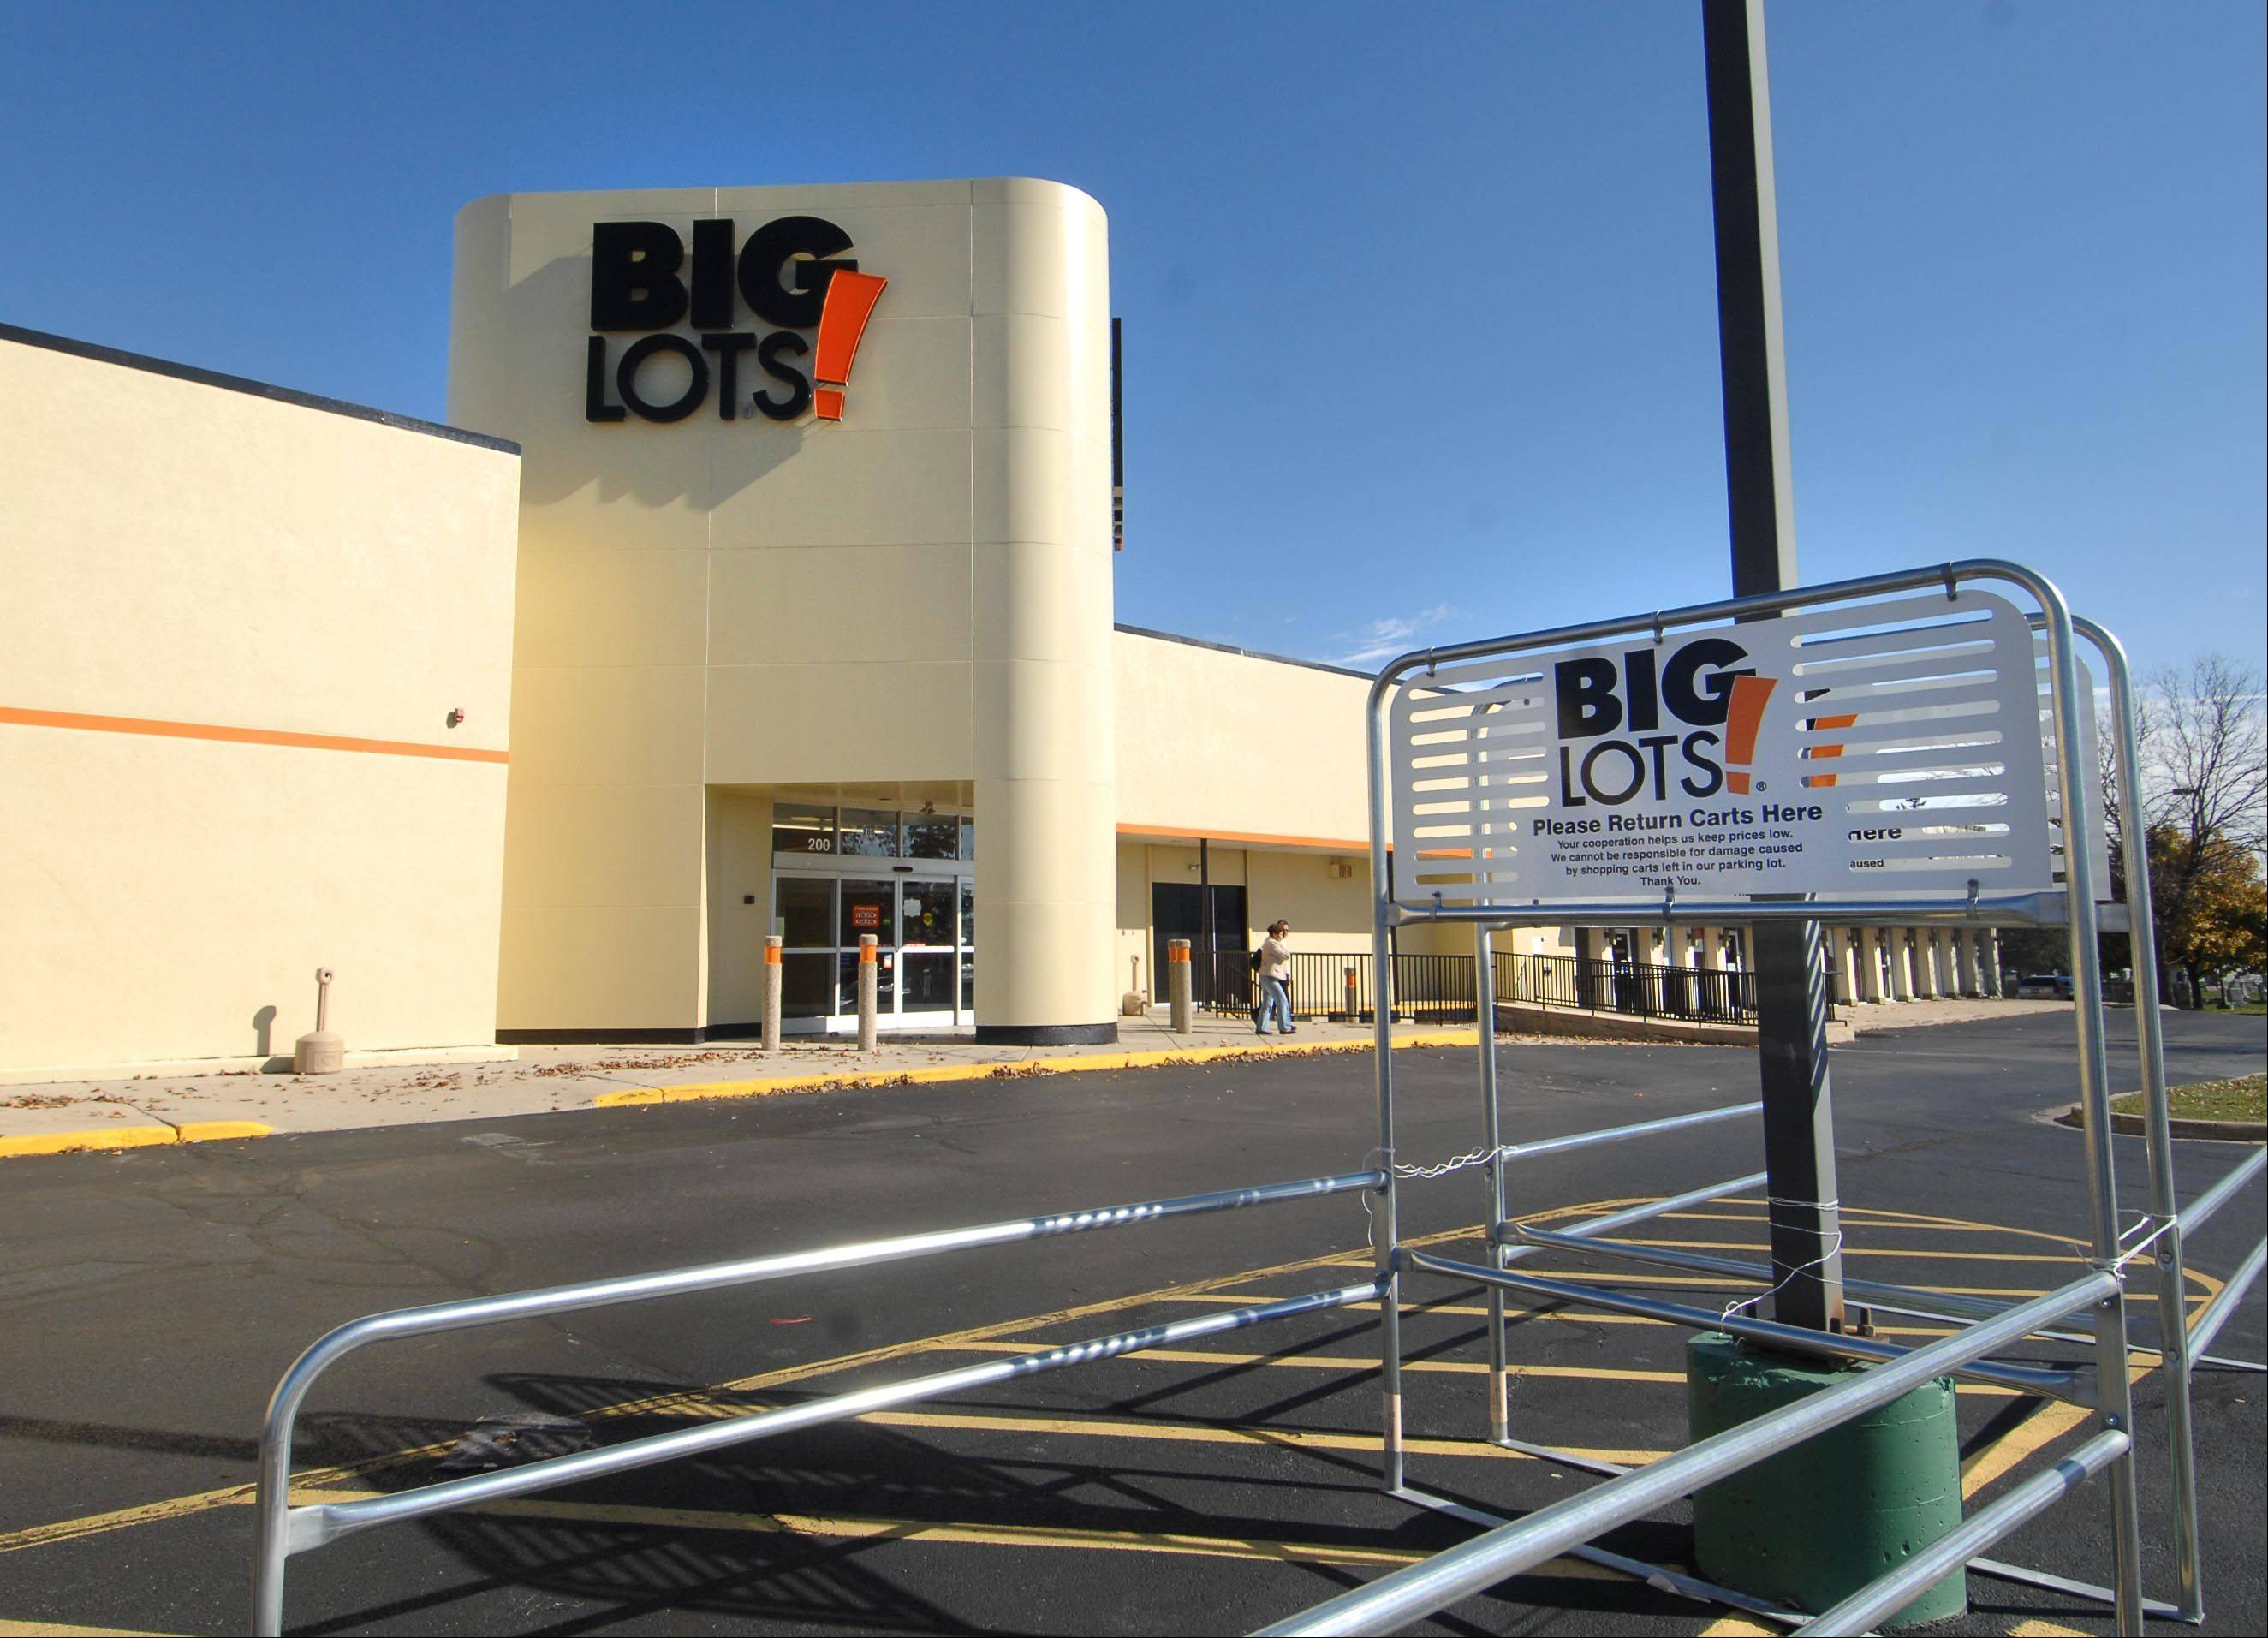 The site of the former Circuit City on Route 31 in Carpentersville will soon be home to Big Lots, which is opening next Thursday.